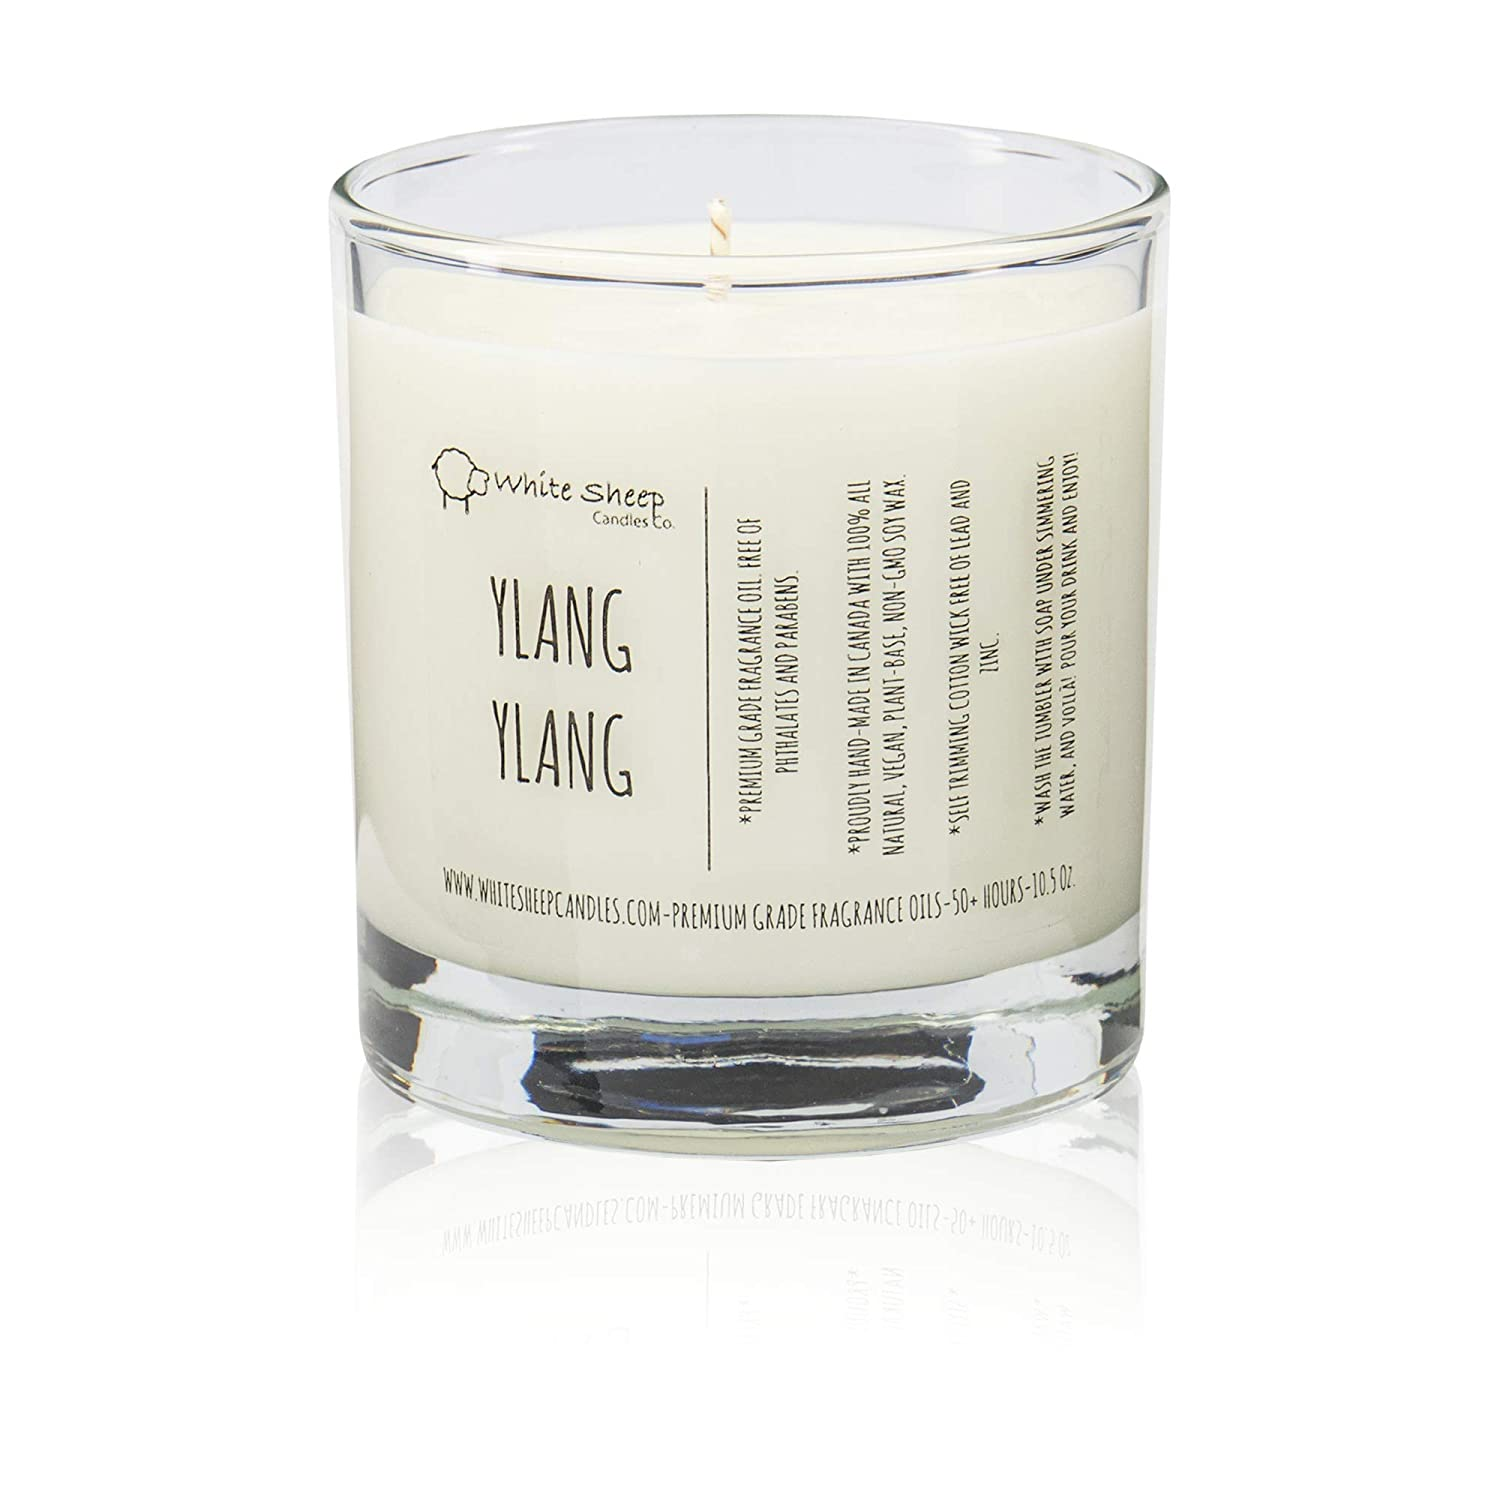 10.5 Oz. Ylang-Ylang Scented Candle by White Sheep Candles Co 50+ Hour Burn Cotton Wick FREE of Lead and Zinc - 100/% Natural Soy Wax Non-Toxic /& Environmentally Safe Materials Premium Grade Fragrance Oils